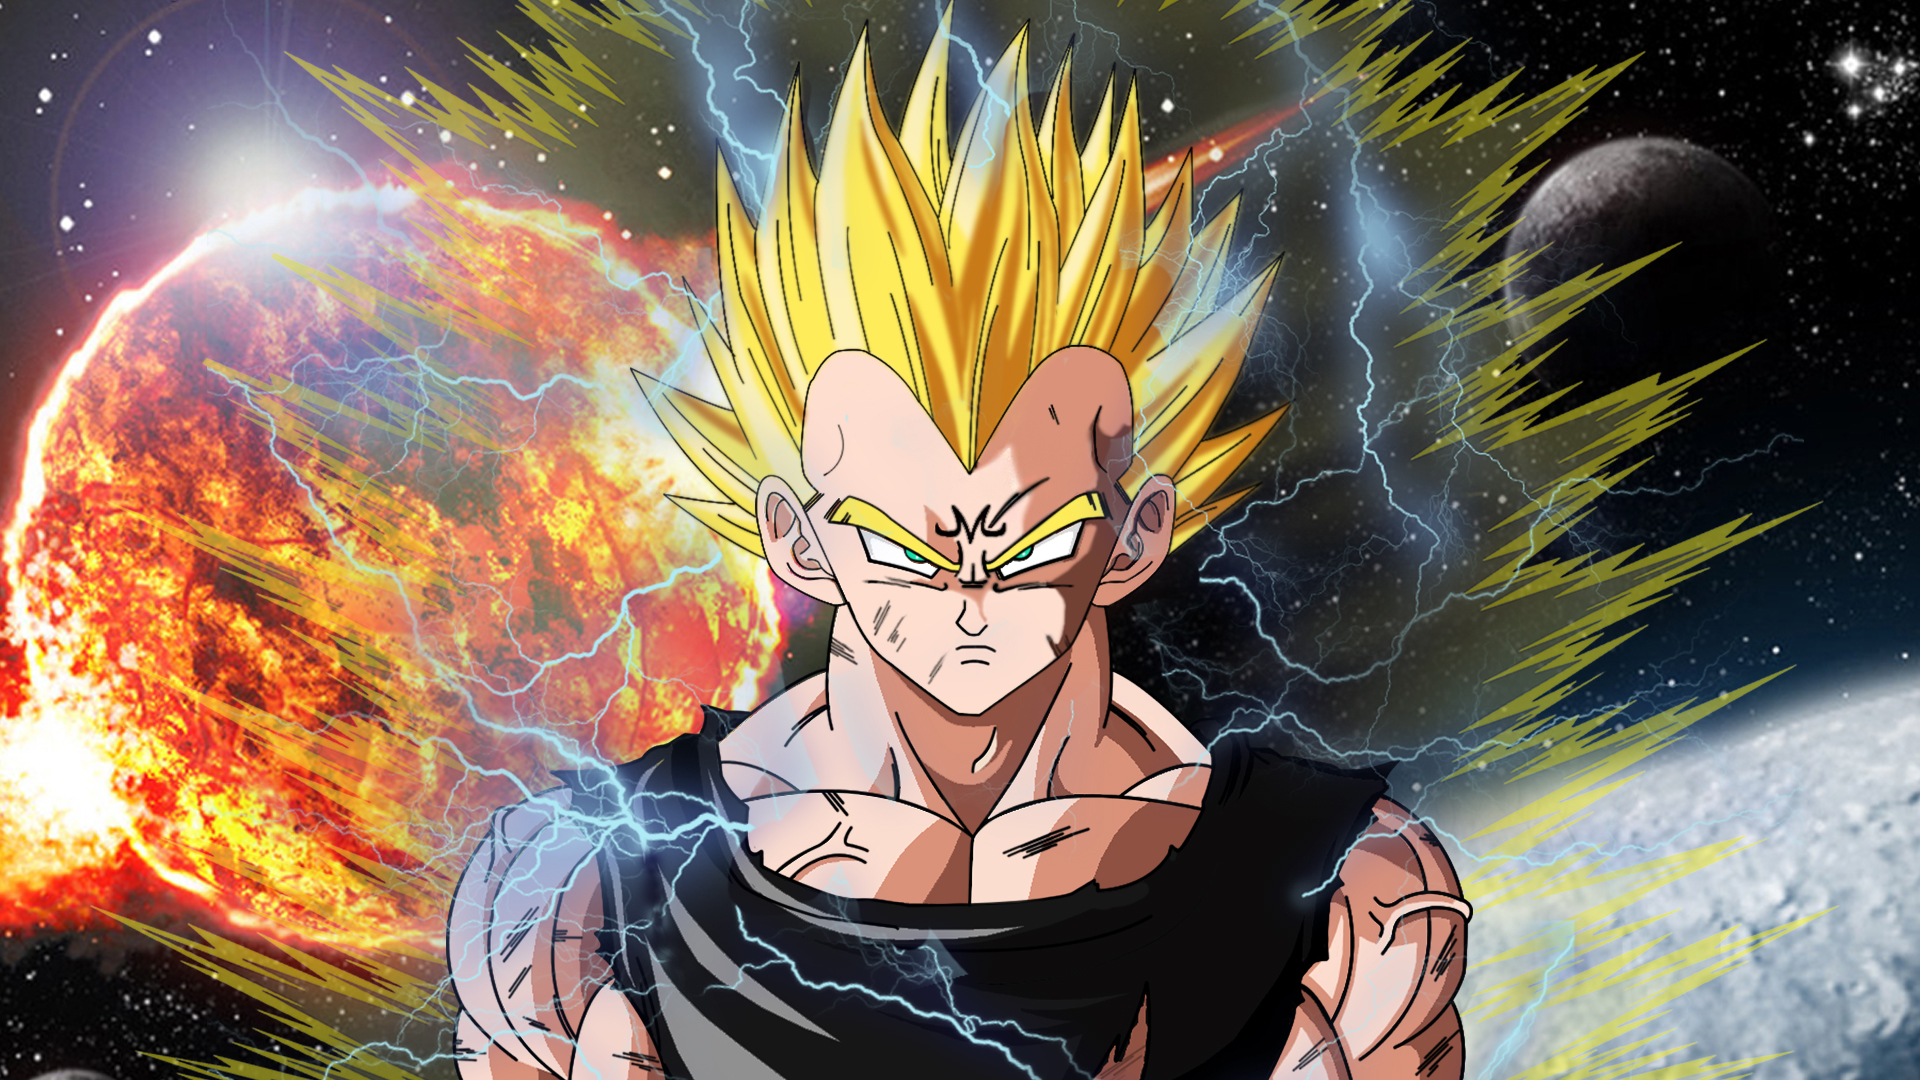 Vegeta wallpapers high quality download free - Vegeta wallpapers for mobile ...